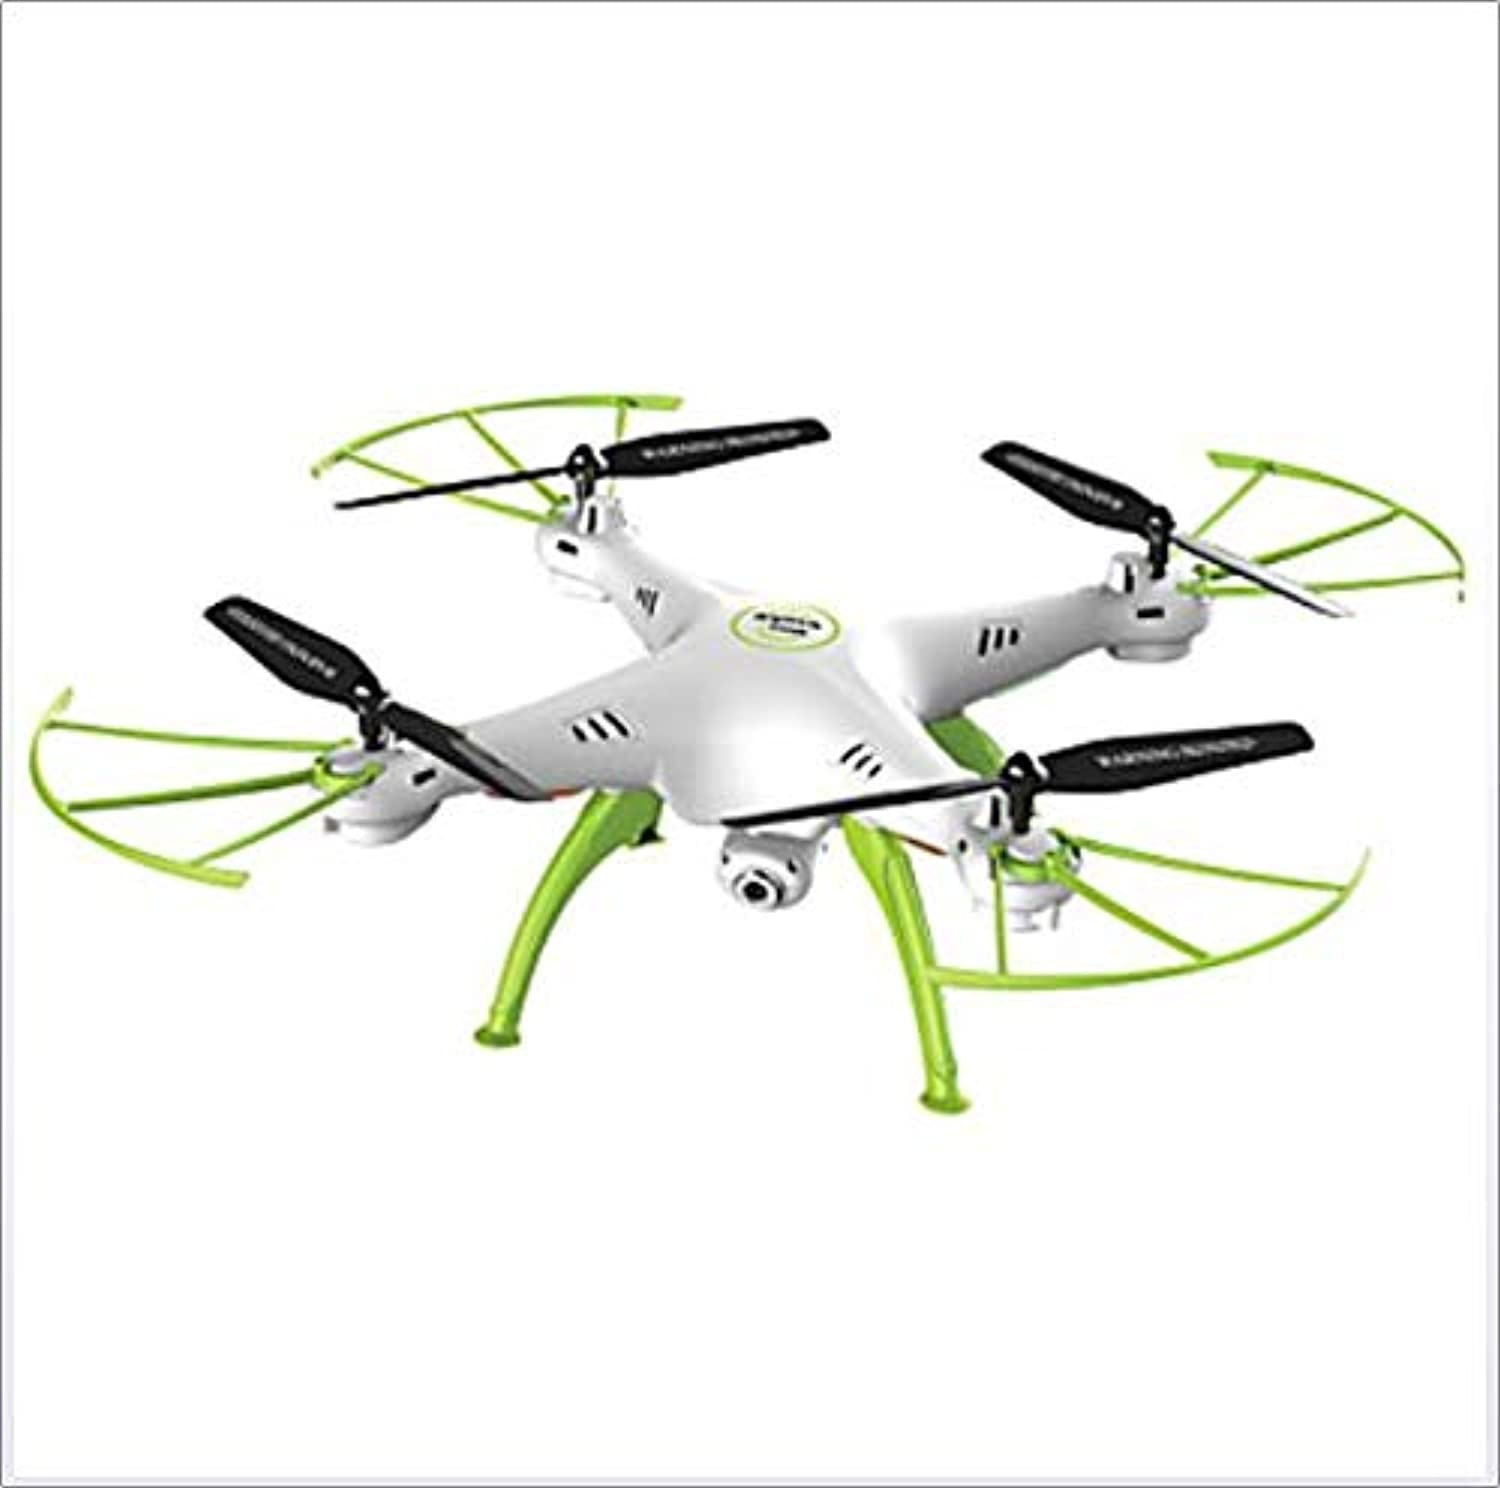 Axis 6 4CH X5HW Drone RC YAMEIJIA 2 4G HD Remote Quadcopter